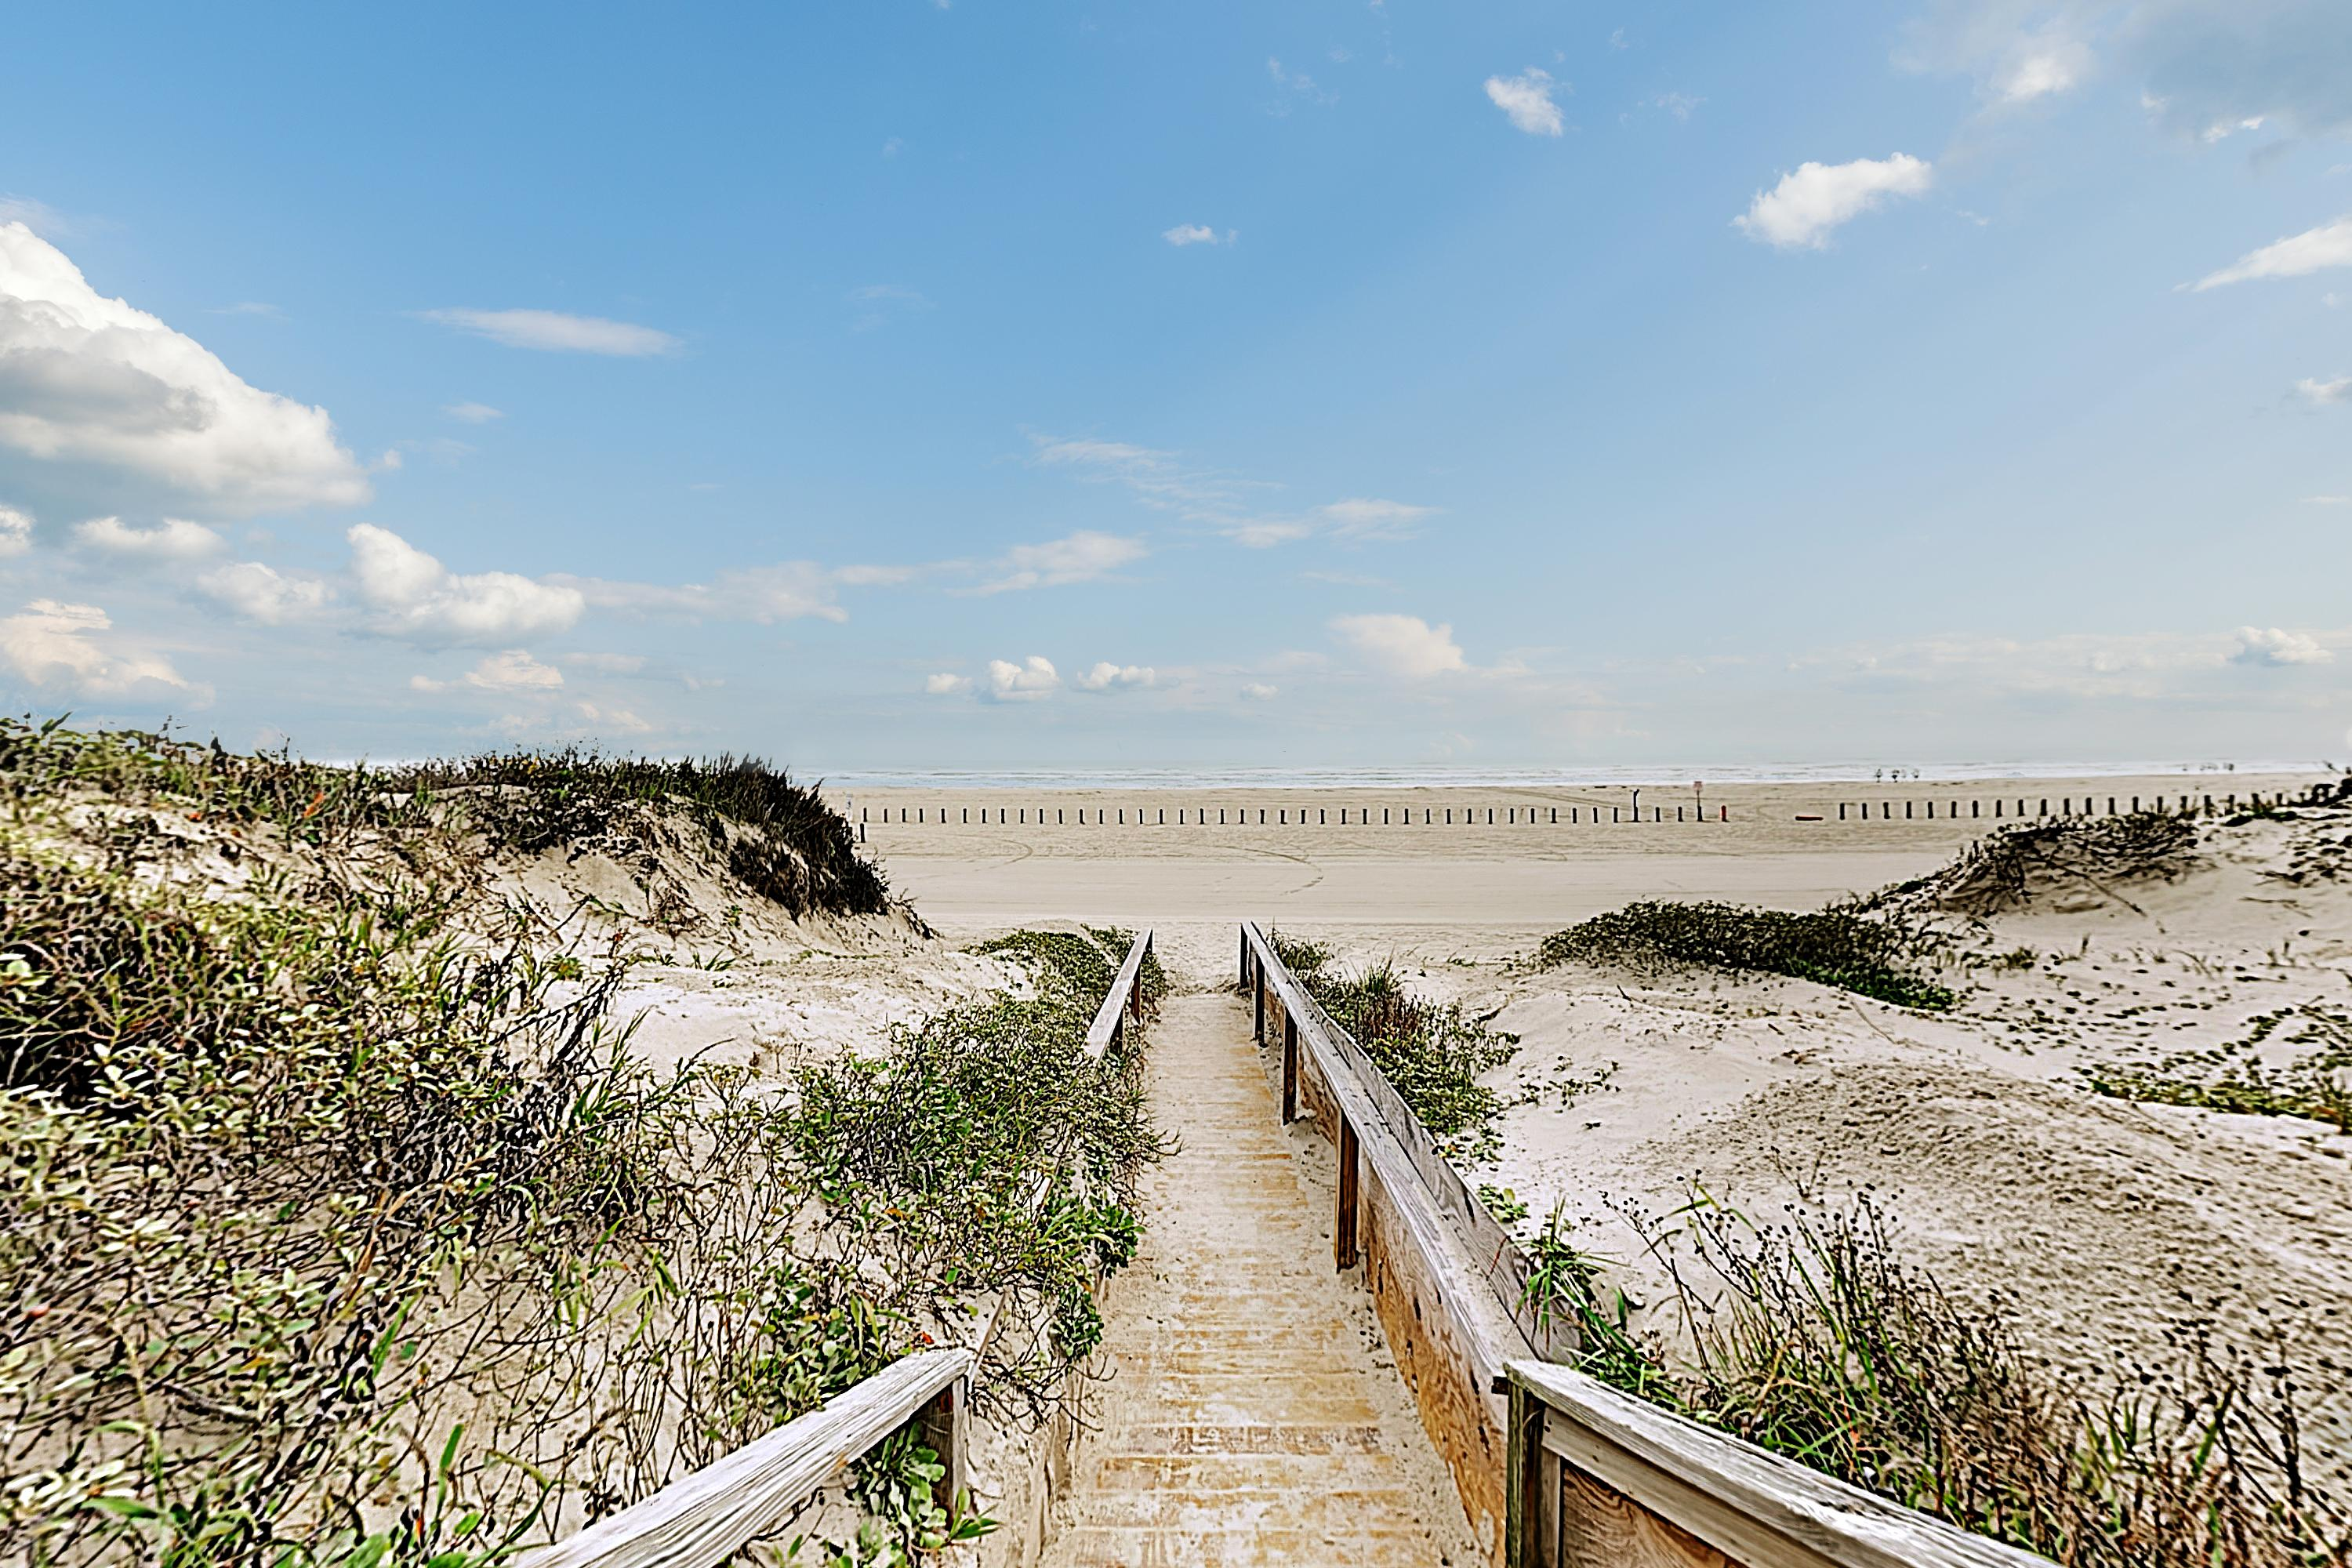 A quick stroll down the boardwalk leads you directly to the beach!